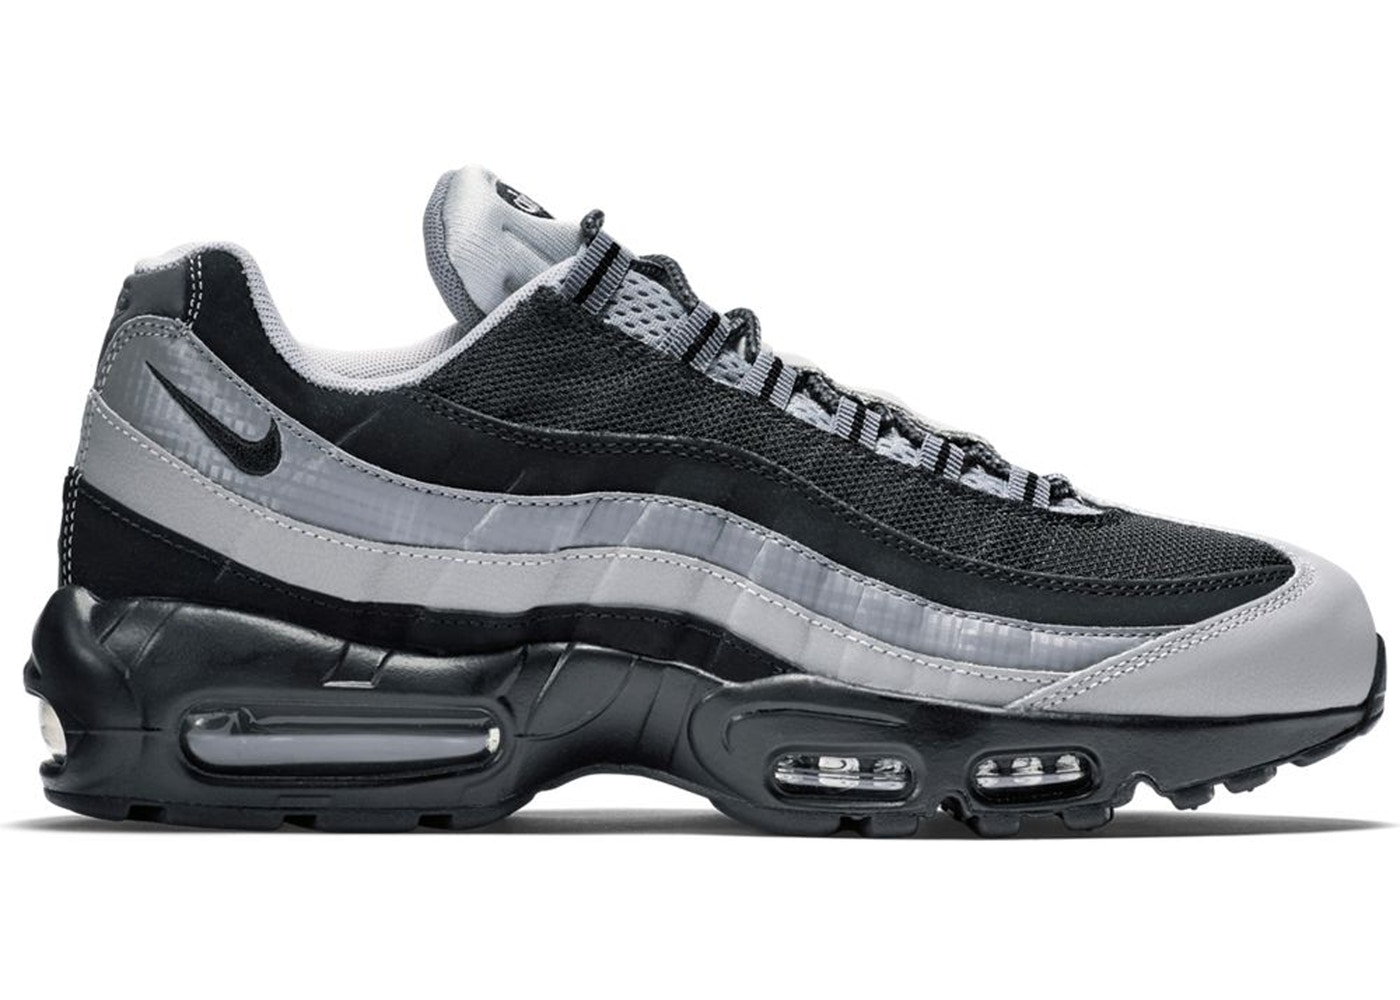 cc05a37daa49a Buy Nike Air Max 95 Shoes & Deadstock Sneakers